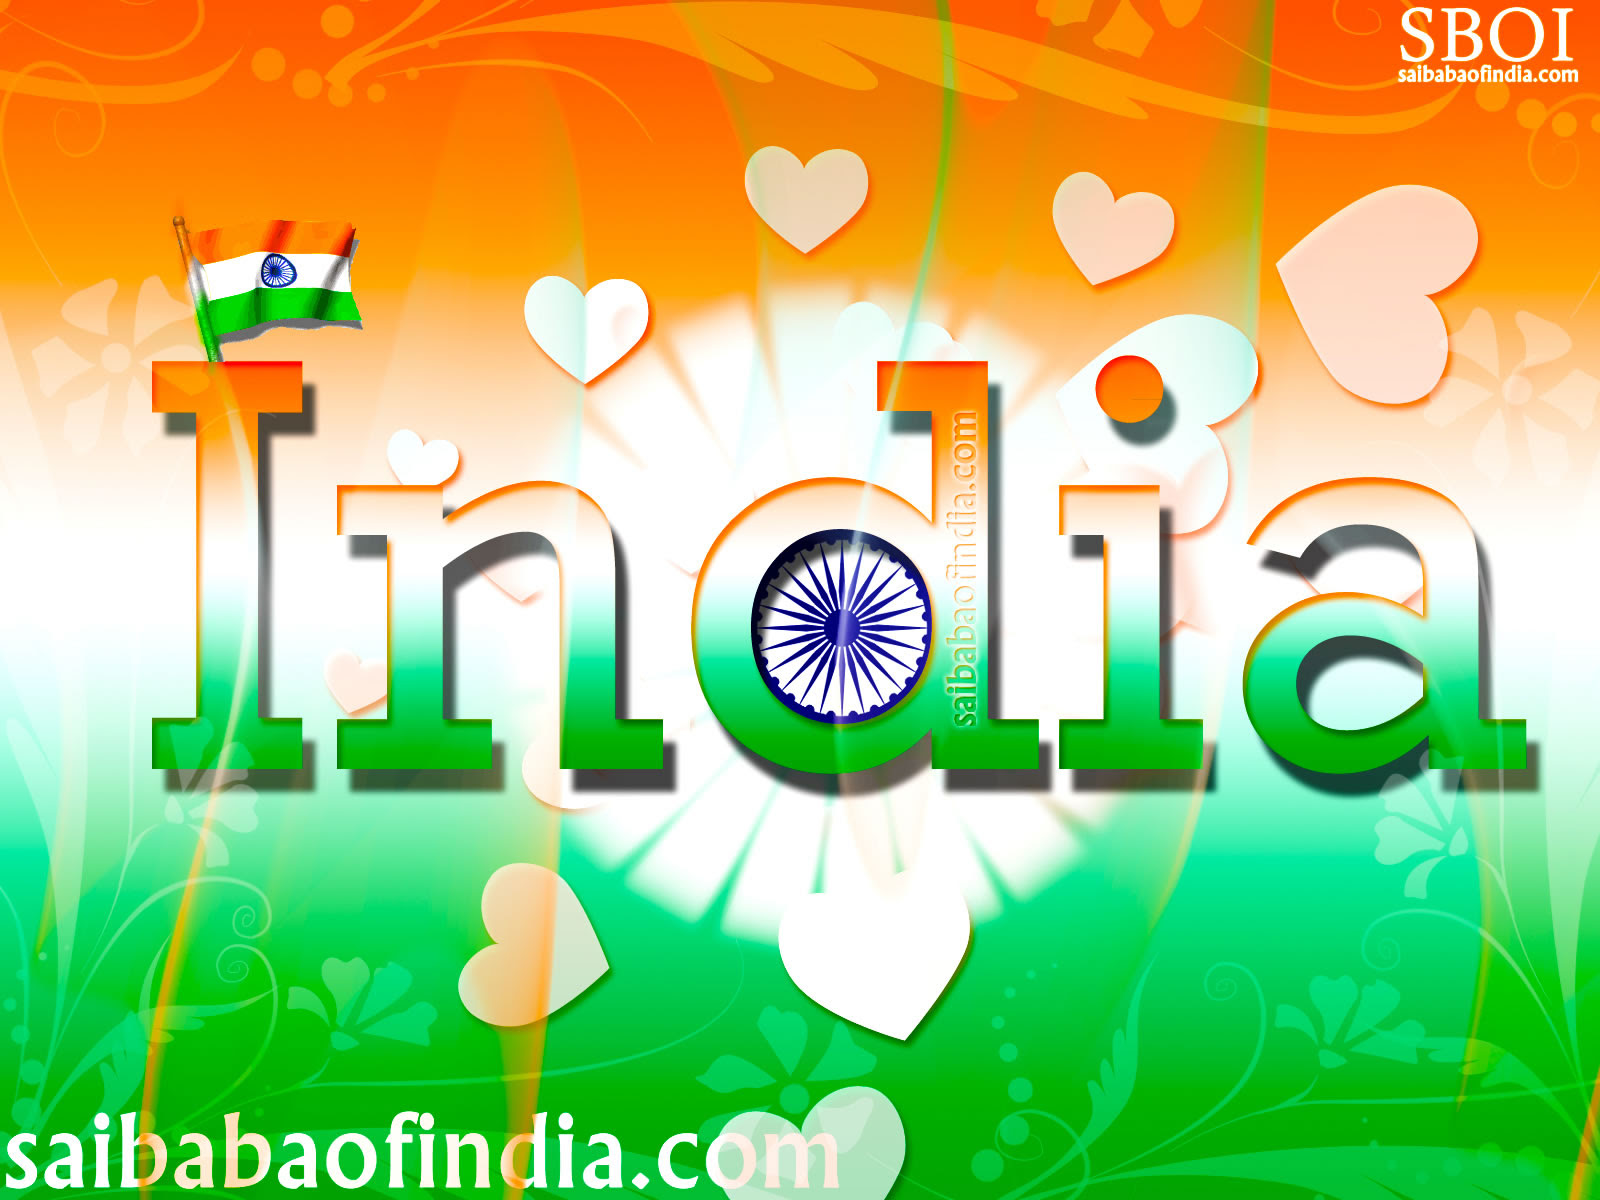 Independence Day Wallpapers Greeting Cards 15th August Sai Baba